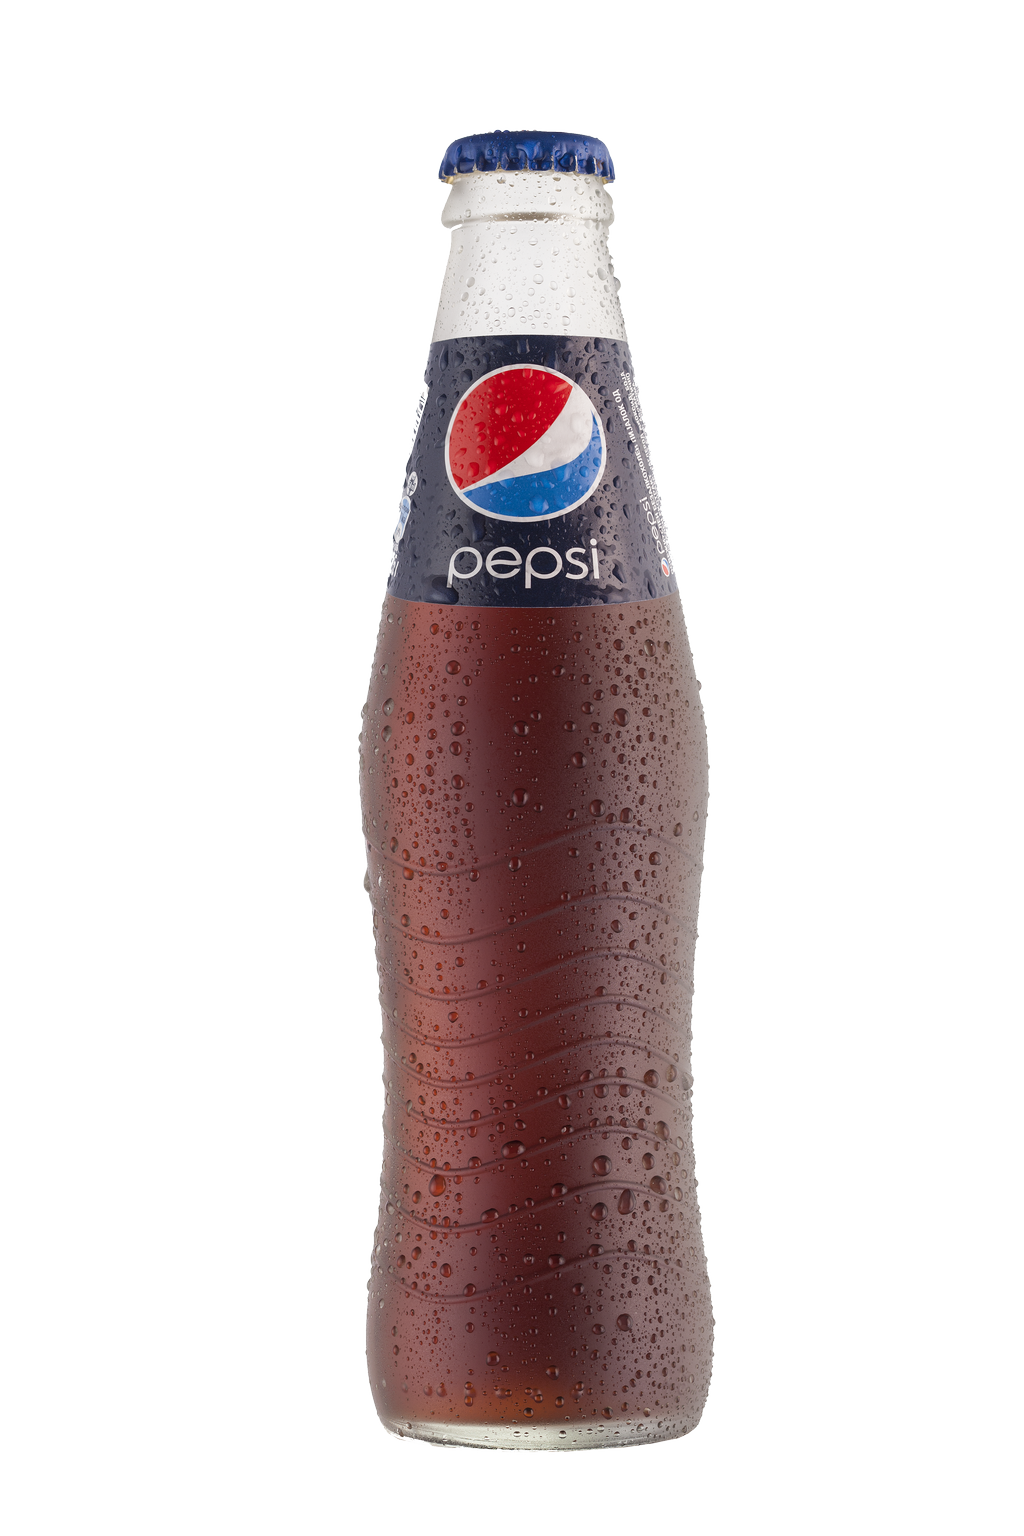 Pepsi Glass Bottle Png image #42986